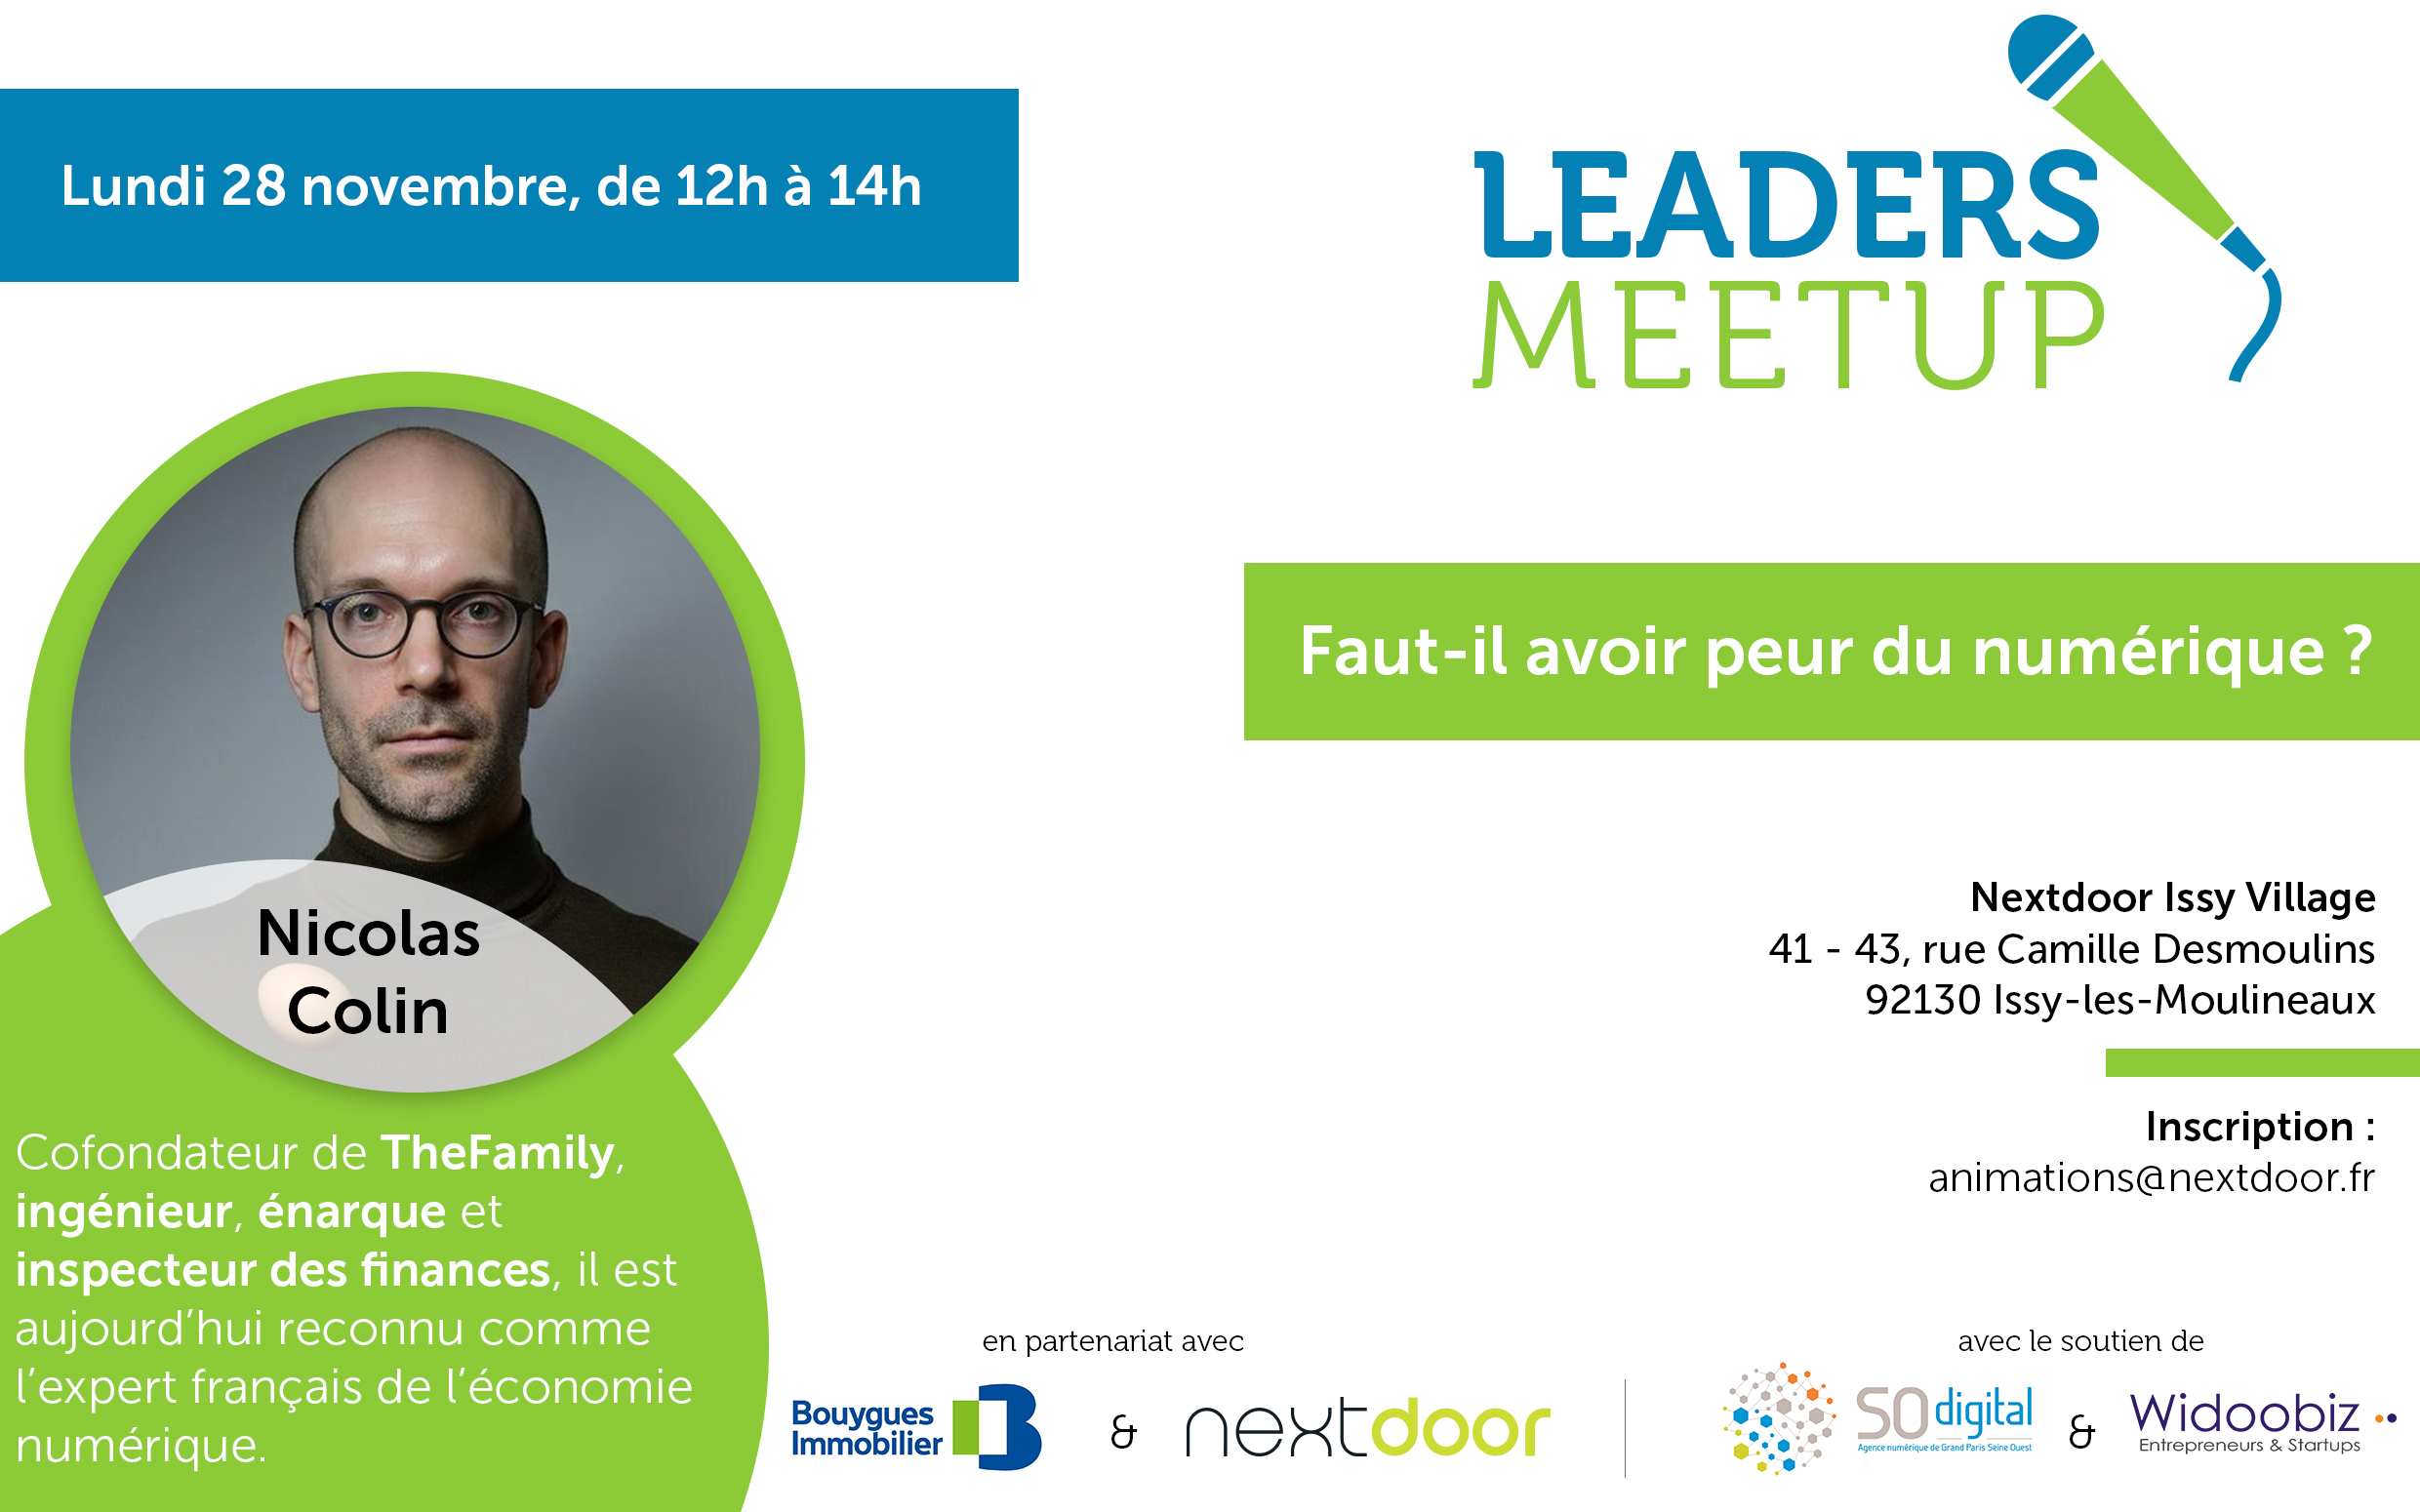 leaders-meet-up-nicolas-colin